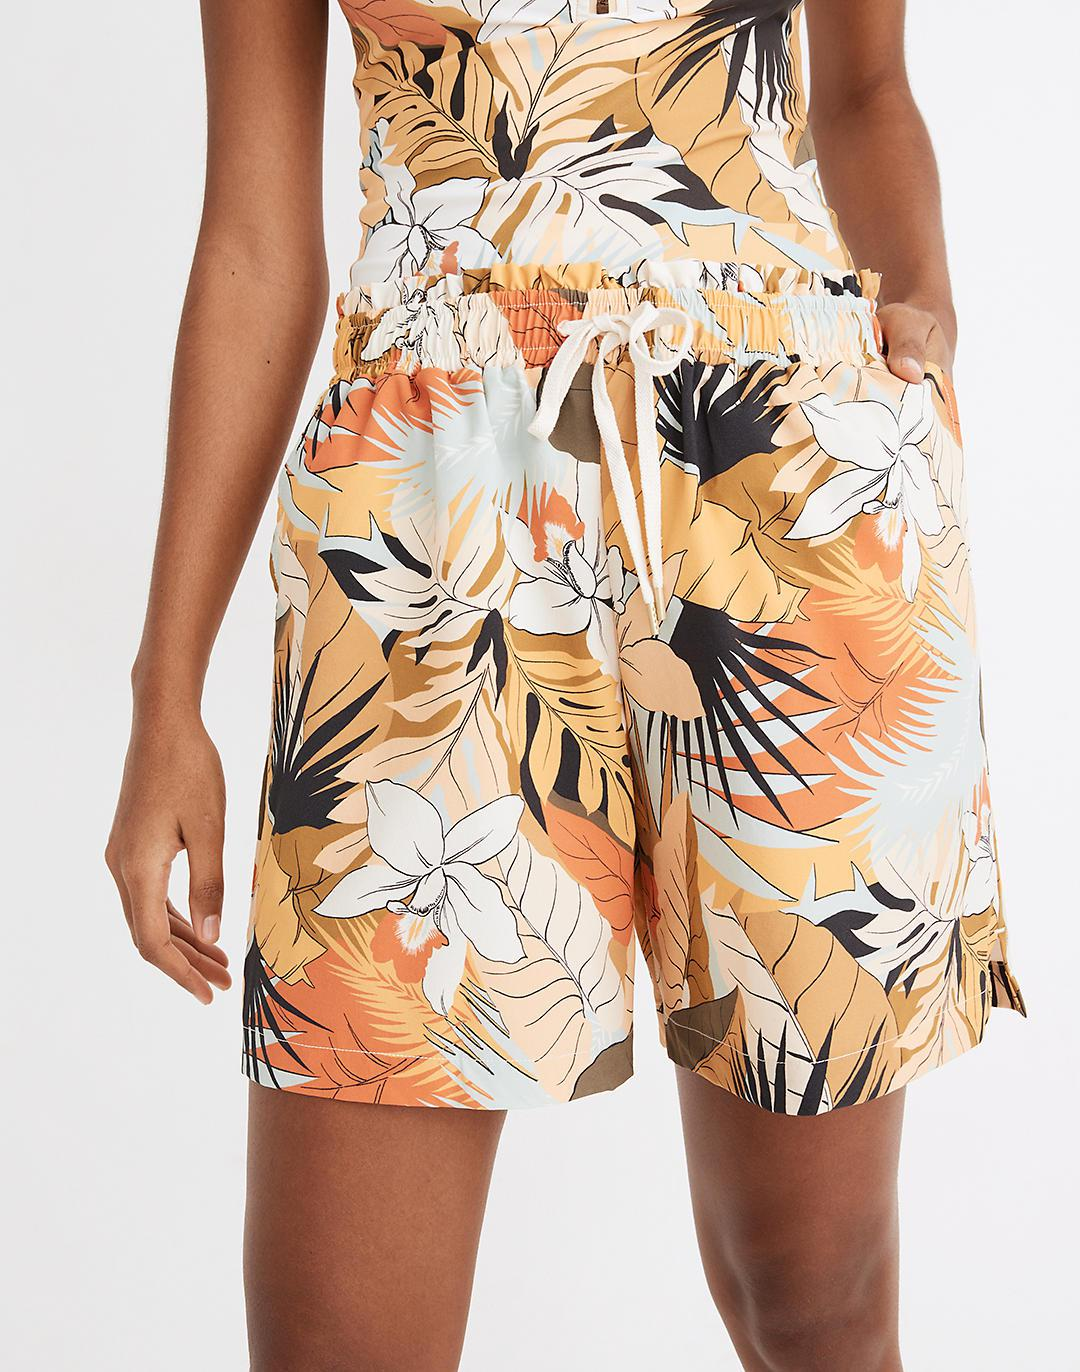 Madewell Second Wave Board Shorts in Tropical Vacation 1